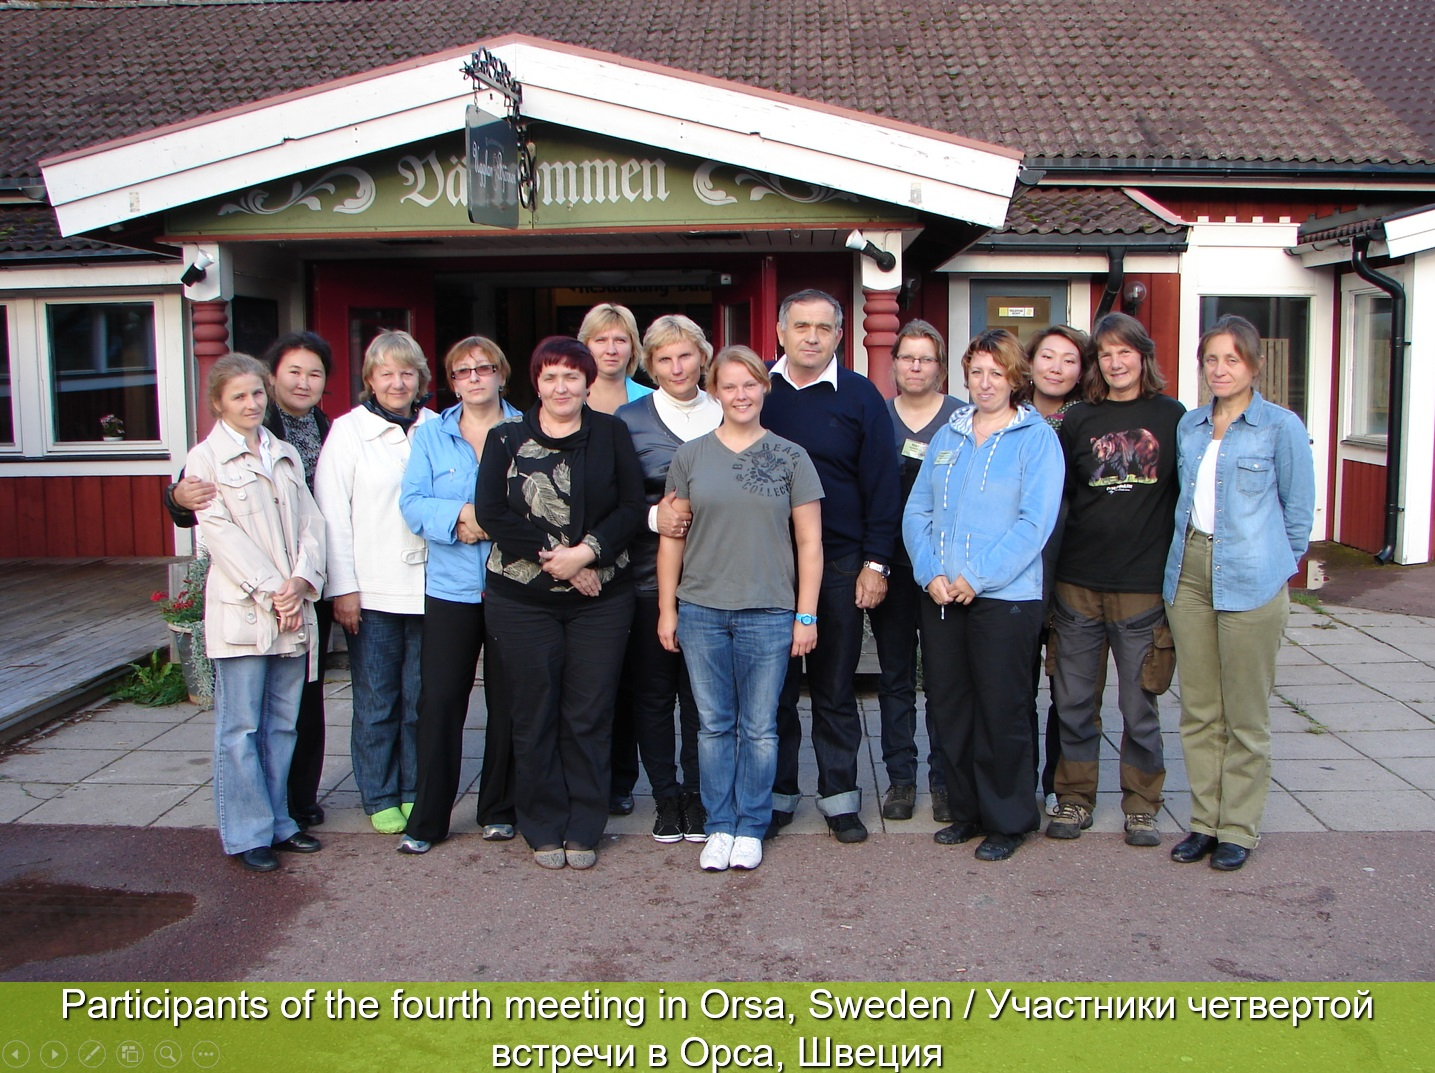 Participants of the fourth meeting in Orsa Sweden